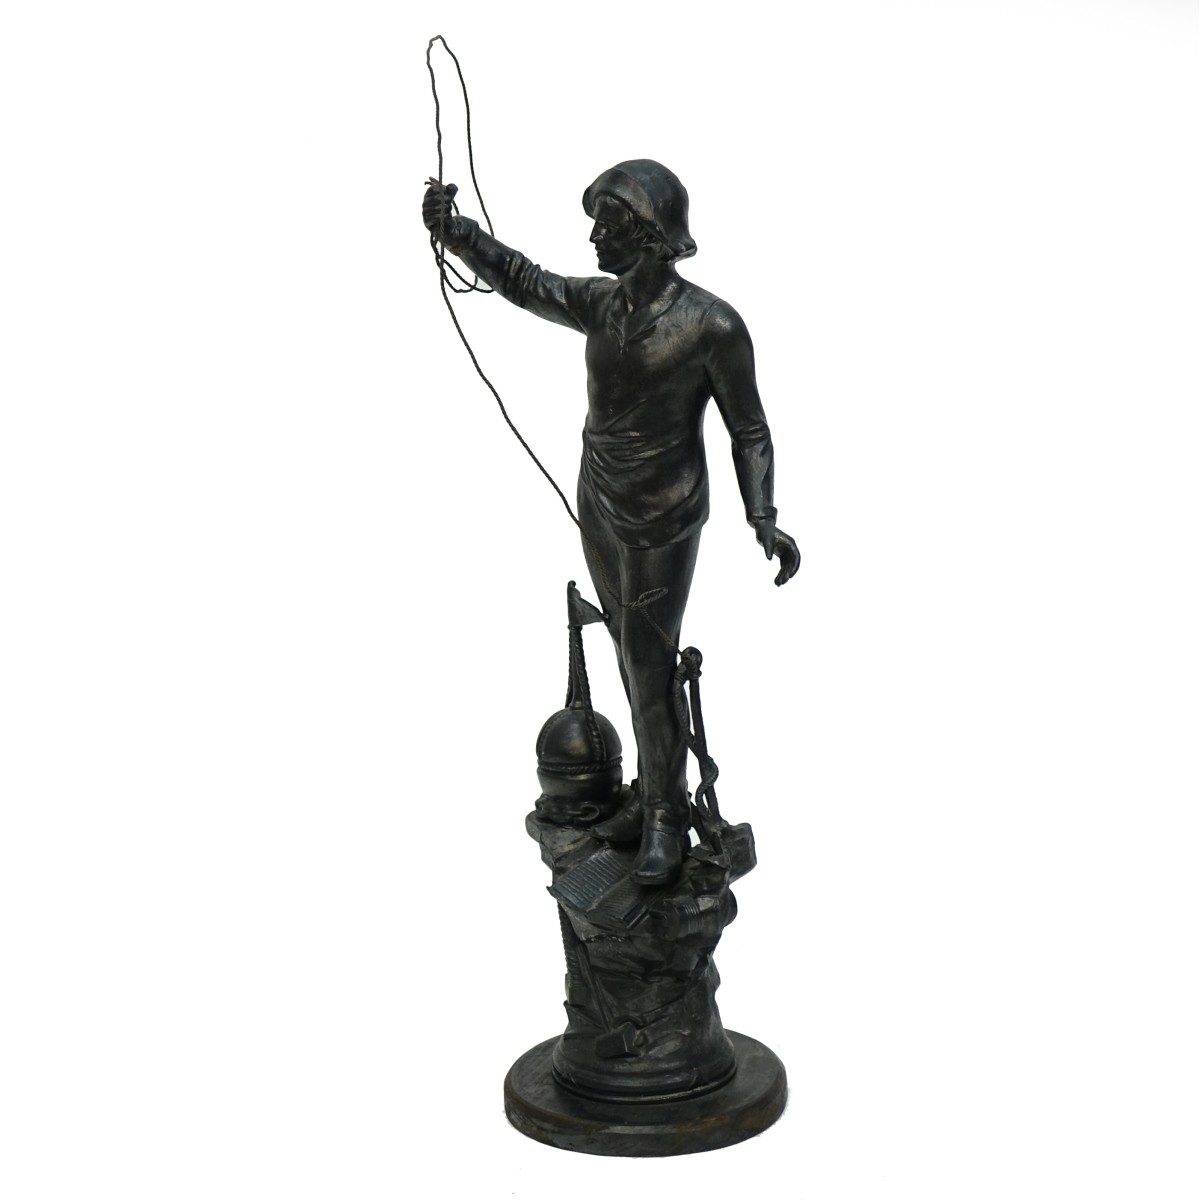 Large 20th C. Spelter Sculpture of a Fisherman